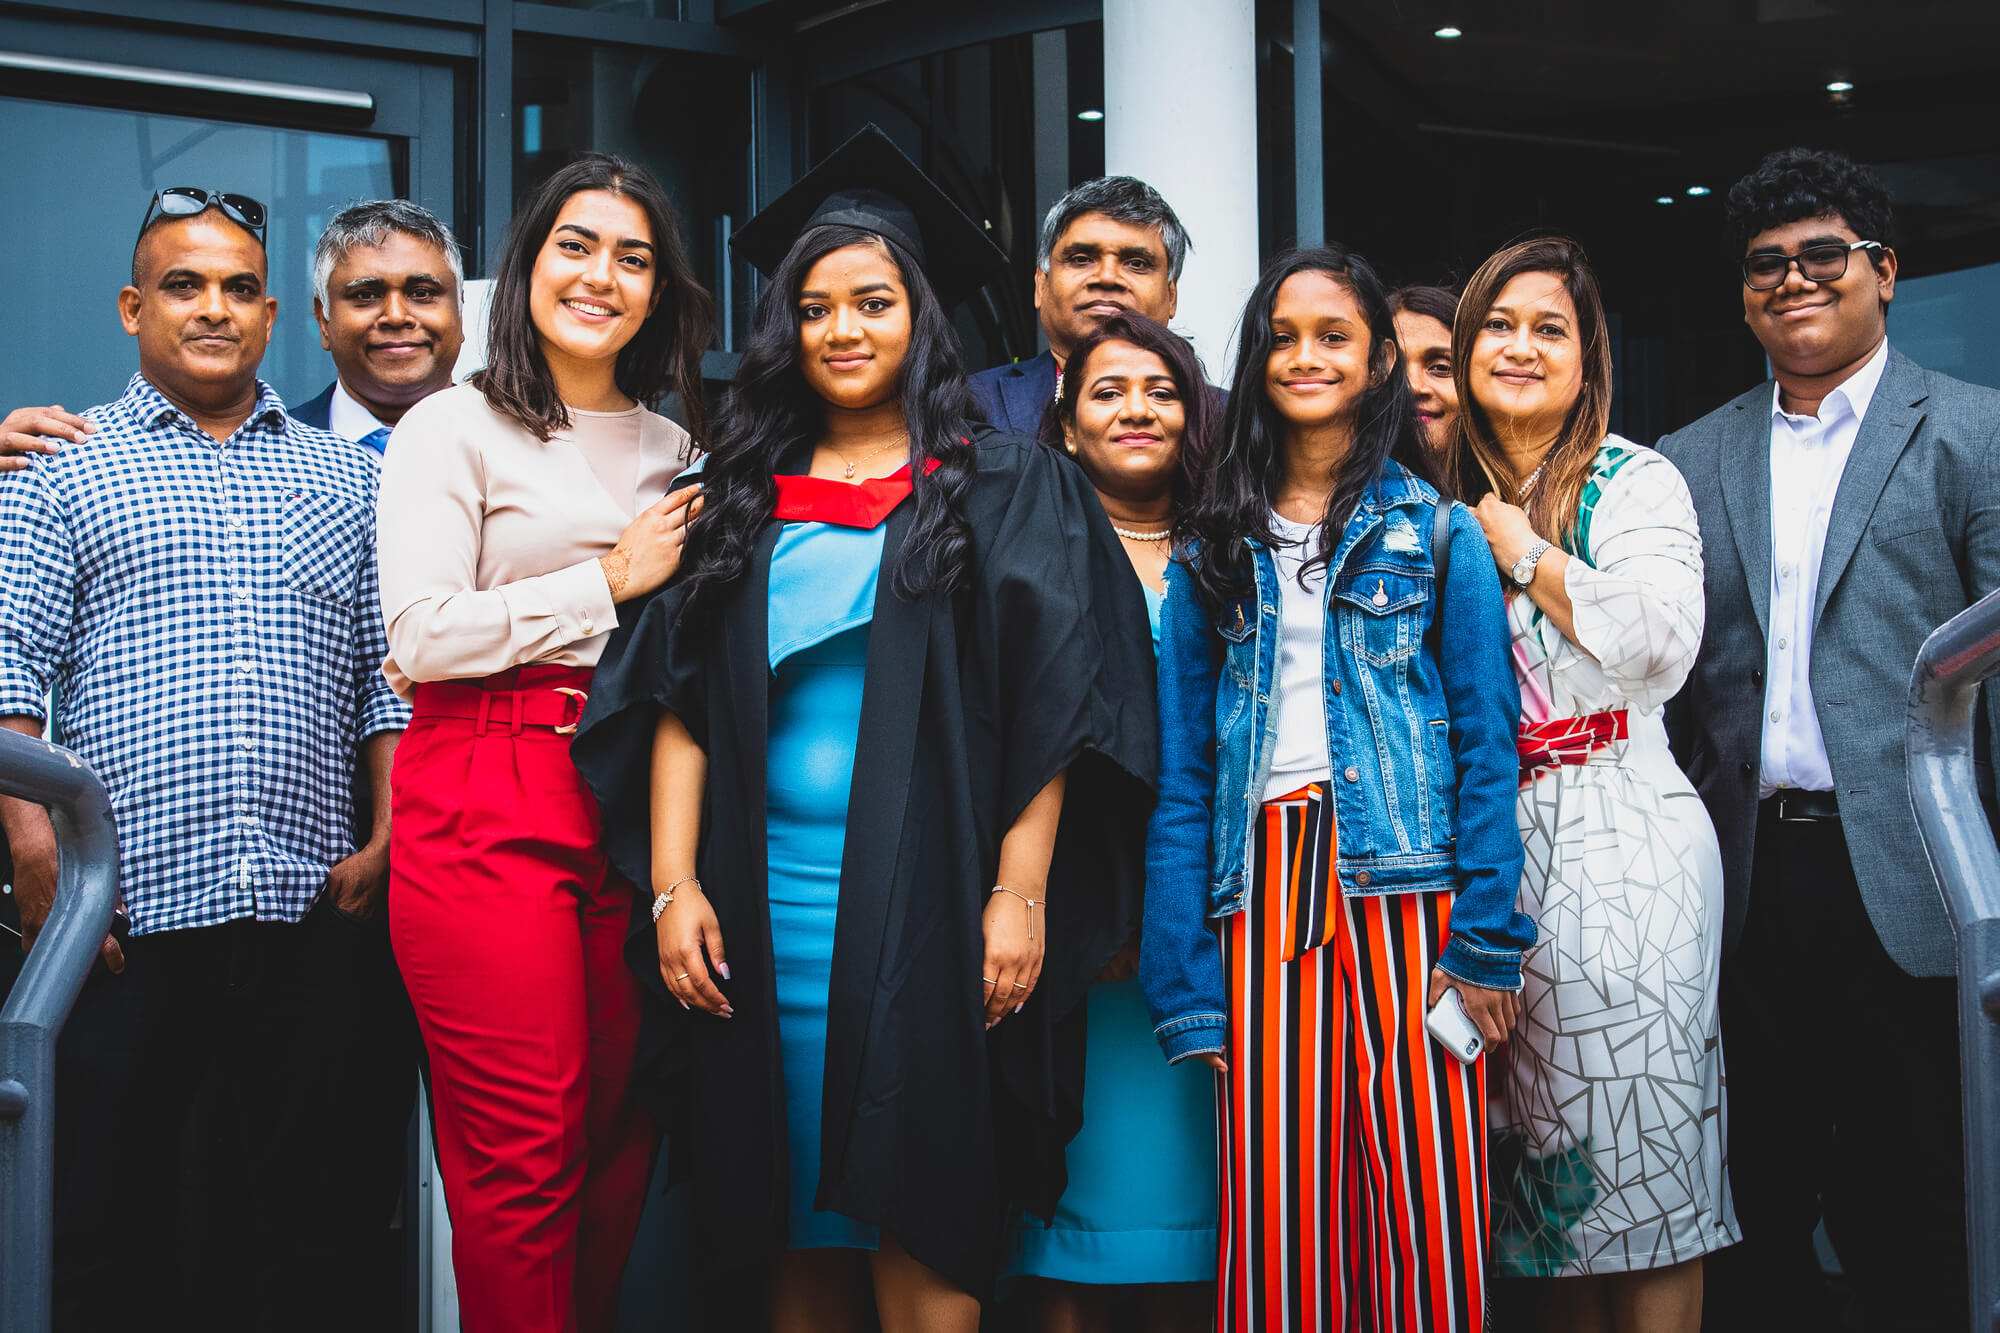 A student stood with a large family at a graduation ceremony